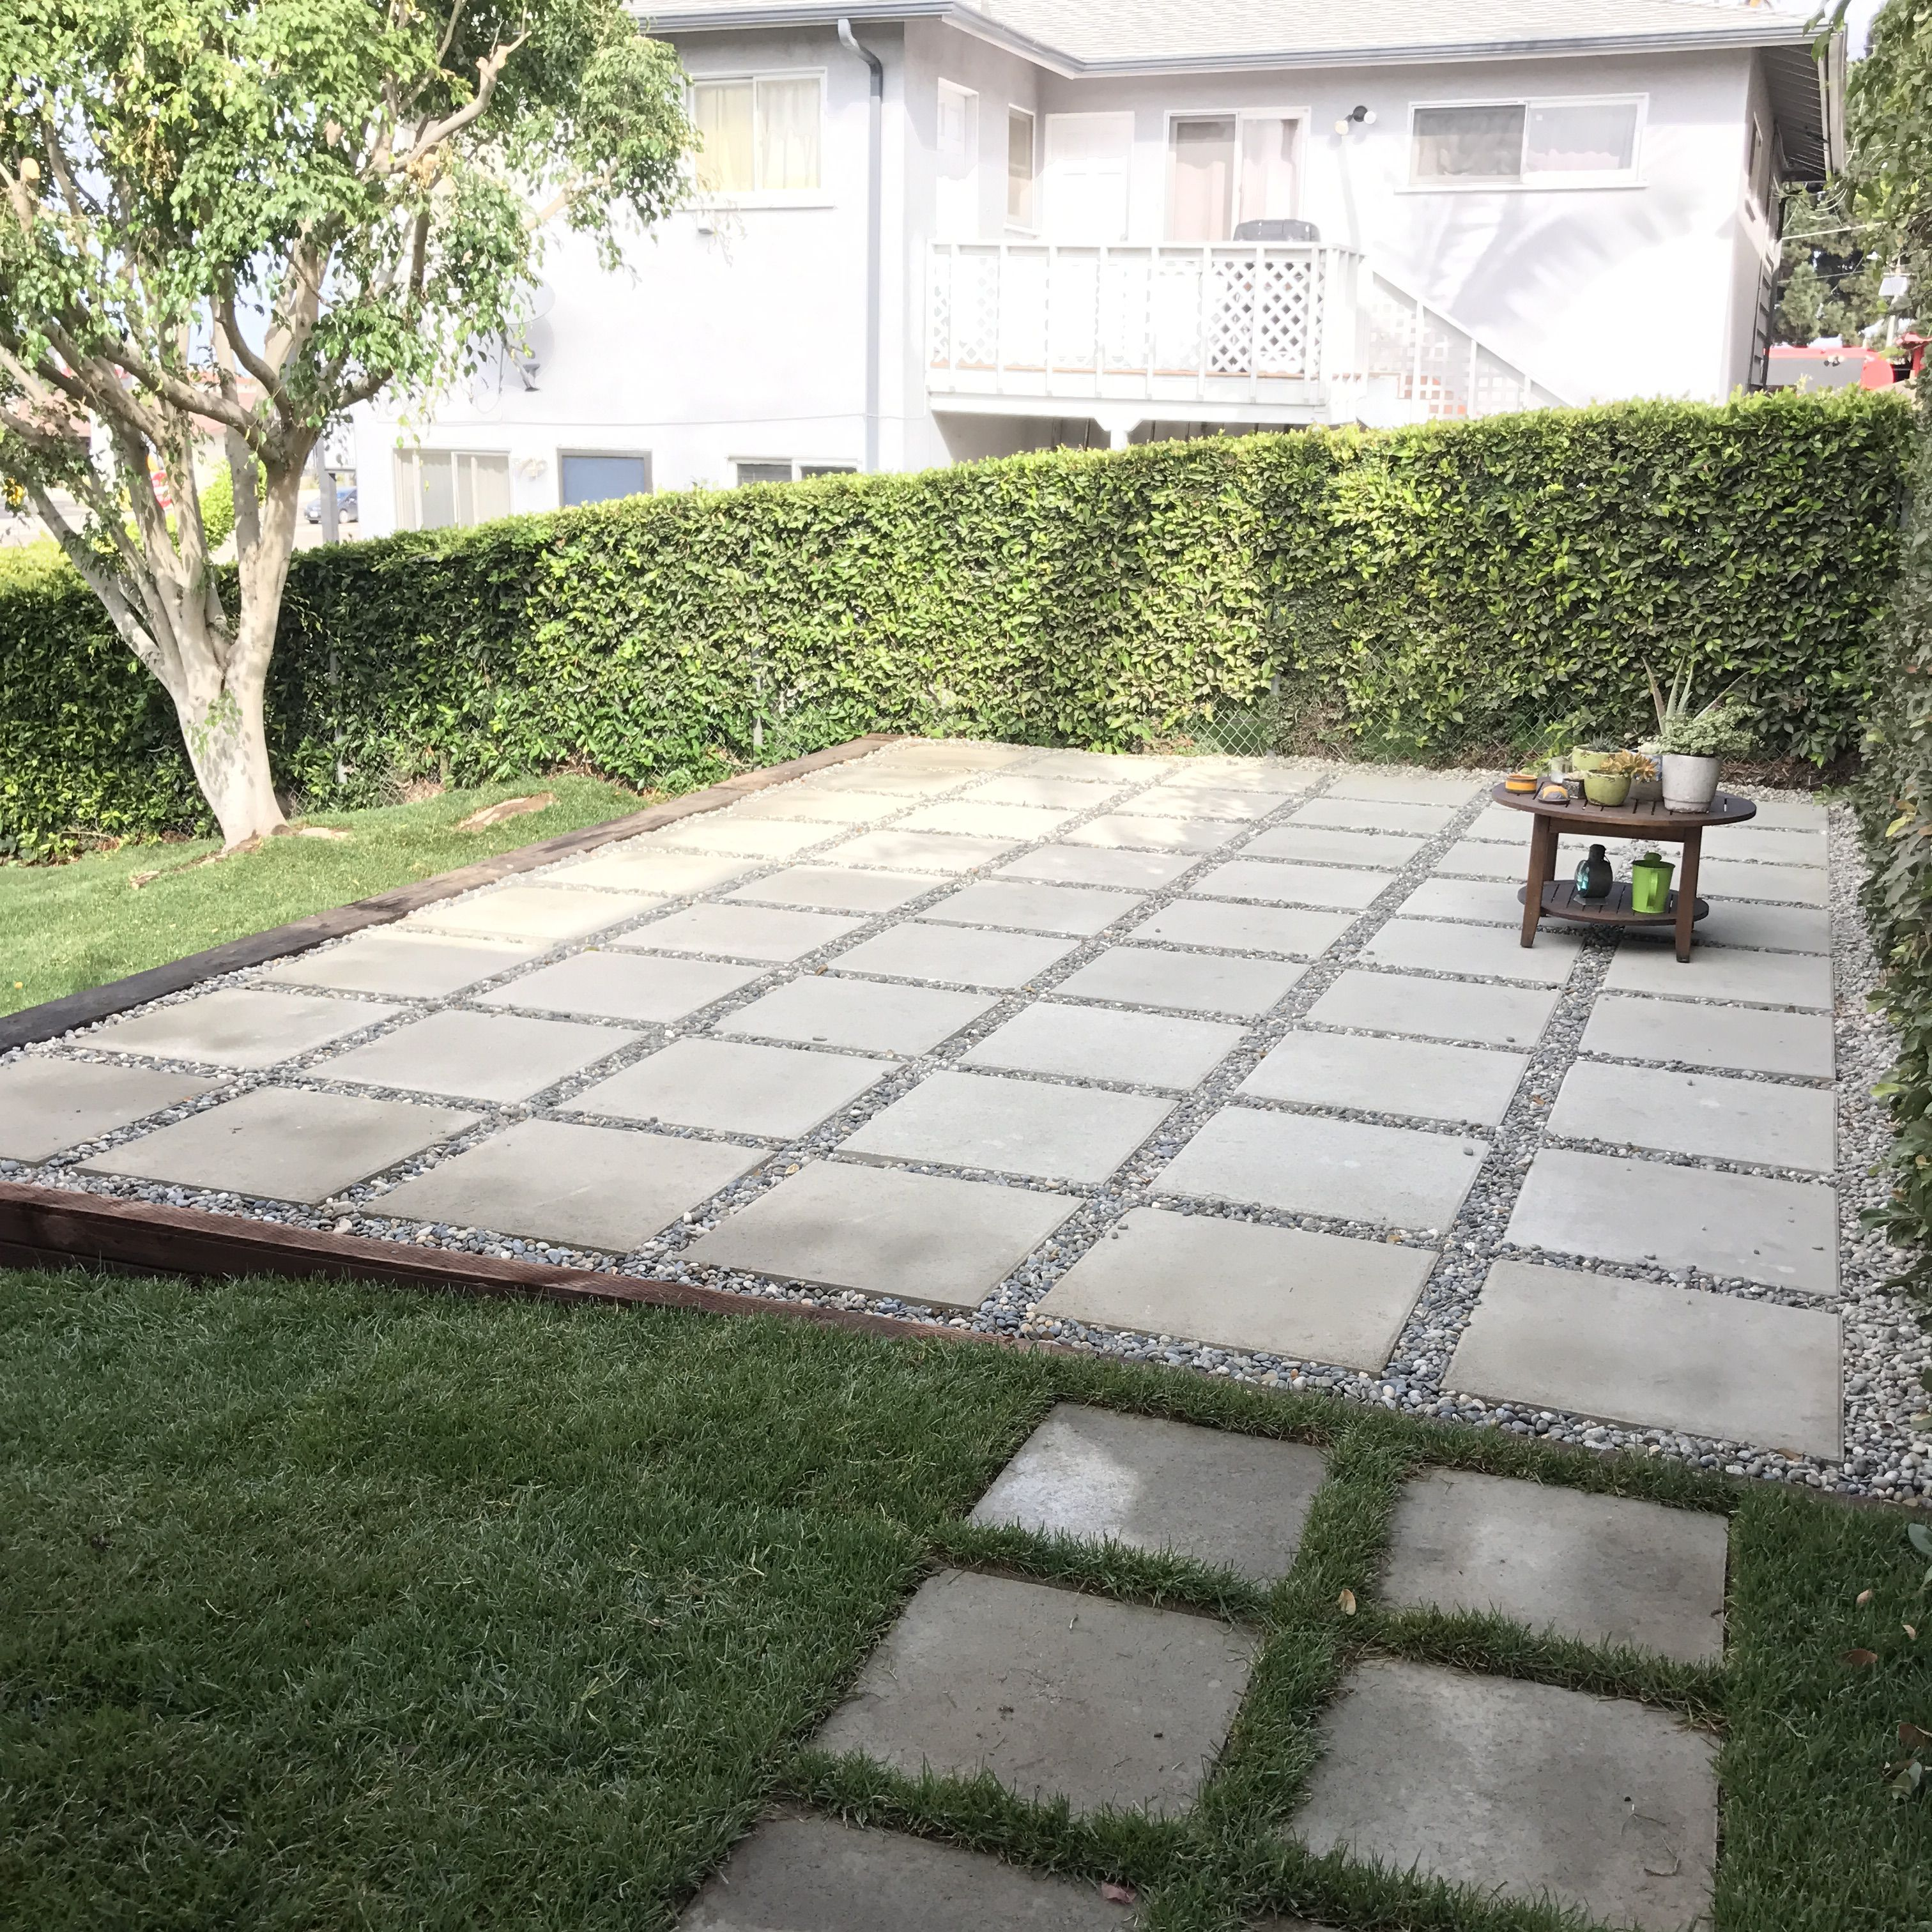 Awesome Paving Designs for Backyard